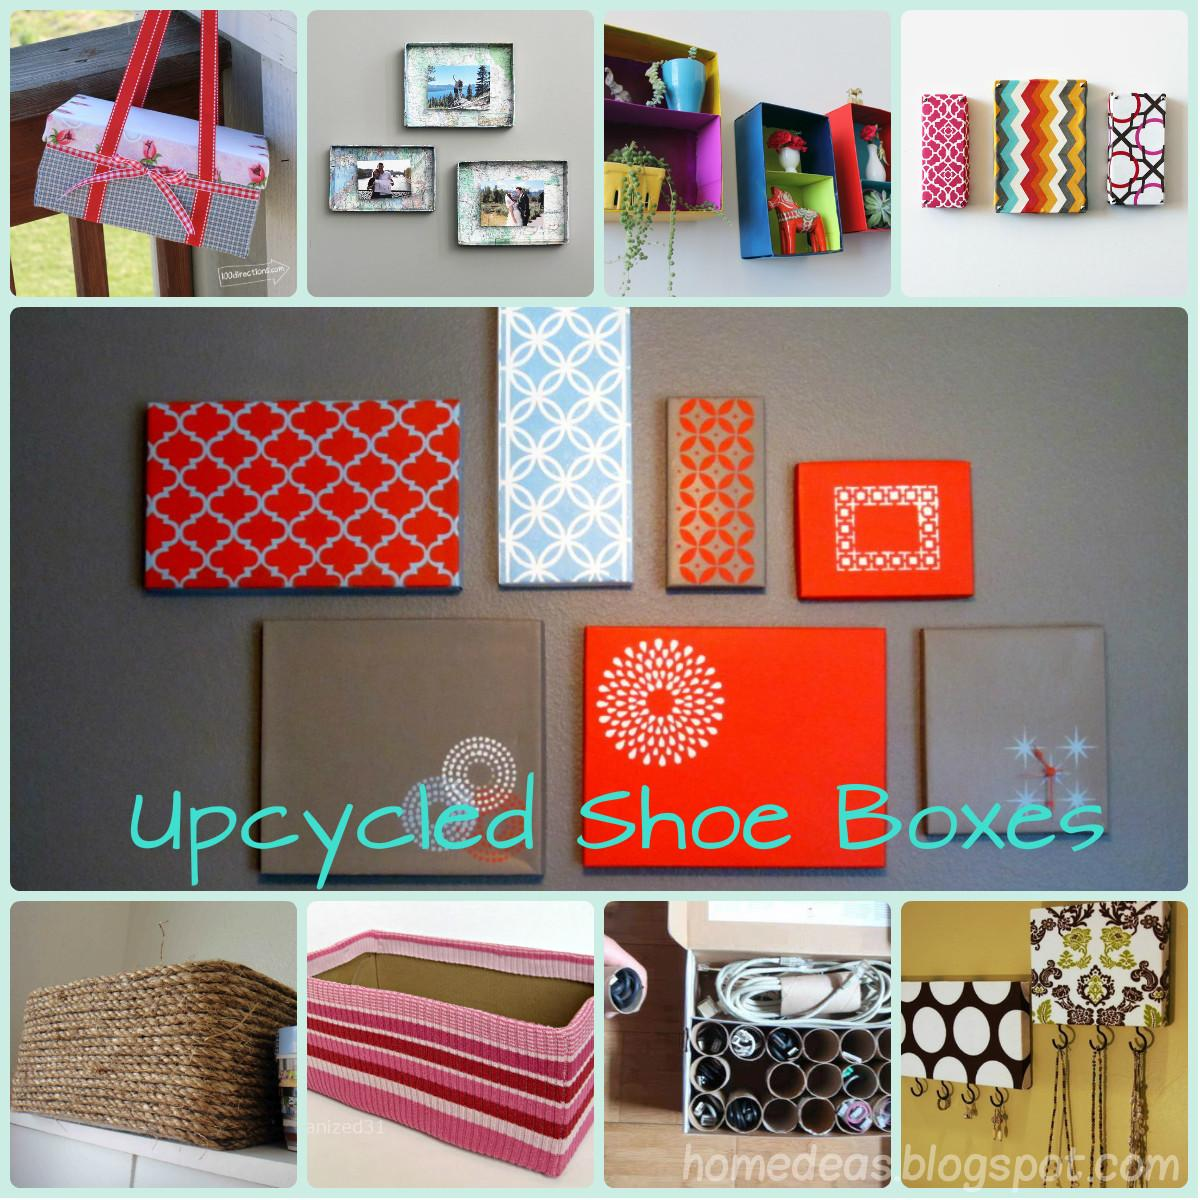 Homedeas Upcycling Shoe Boxes